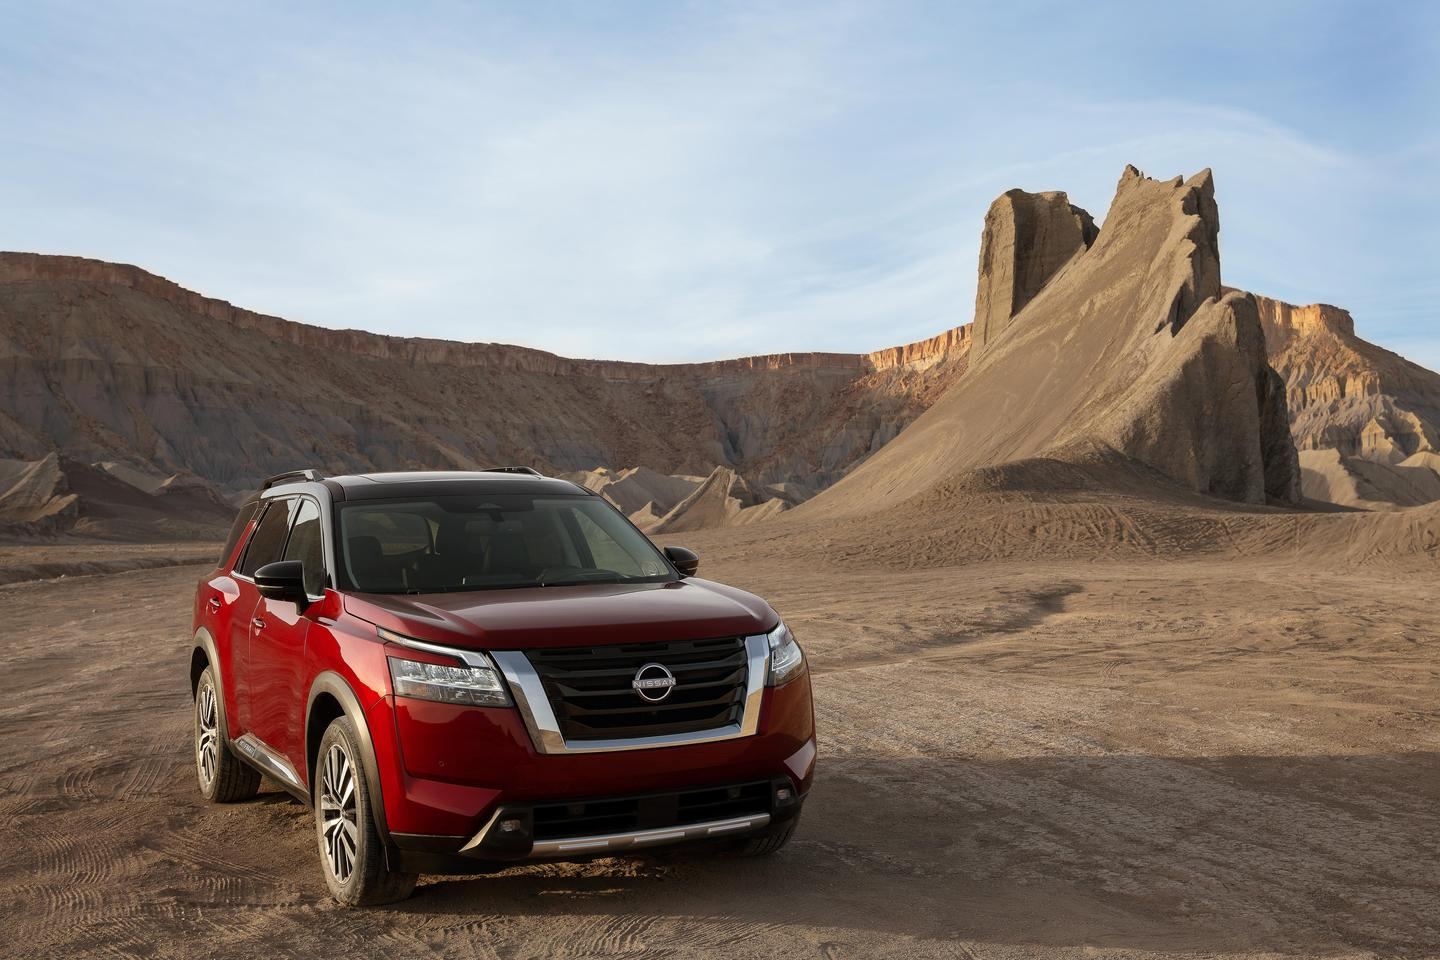 The new 2022 Nissan Pathfinder marks 35 years since the model's debut to the US market